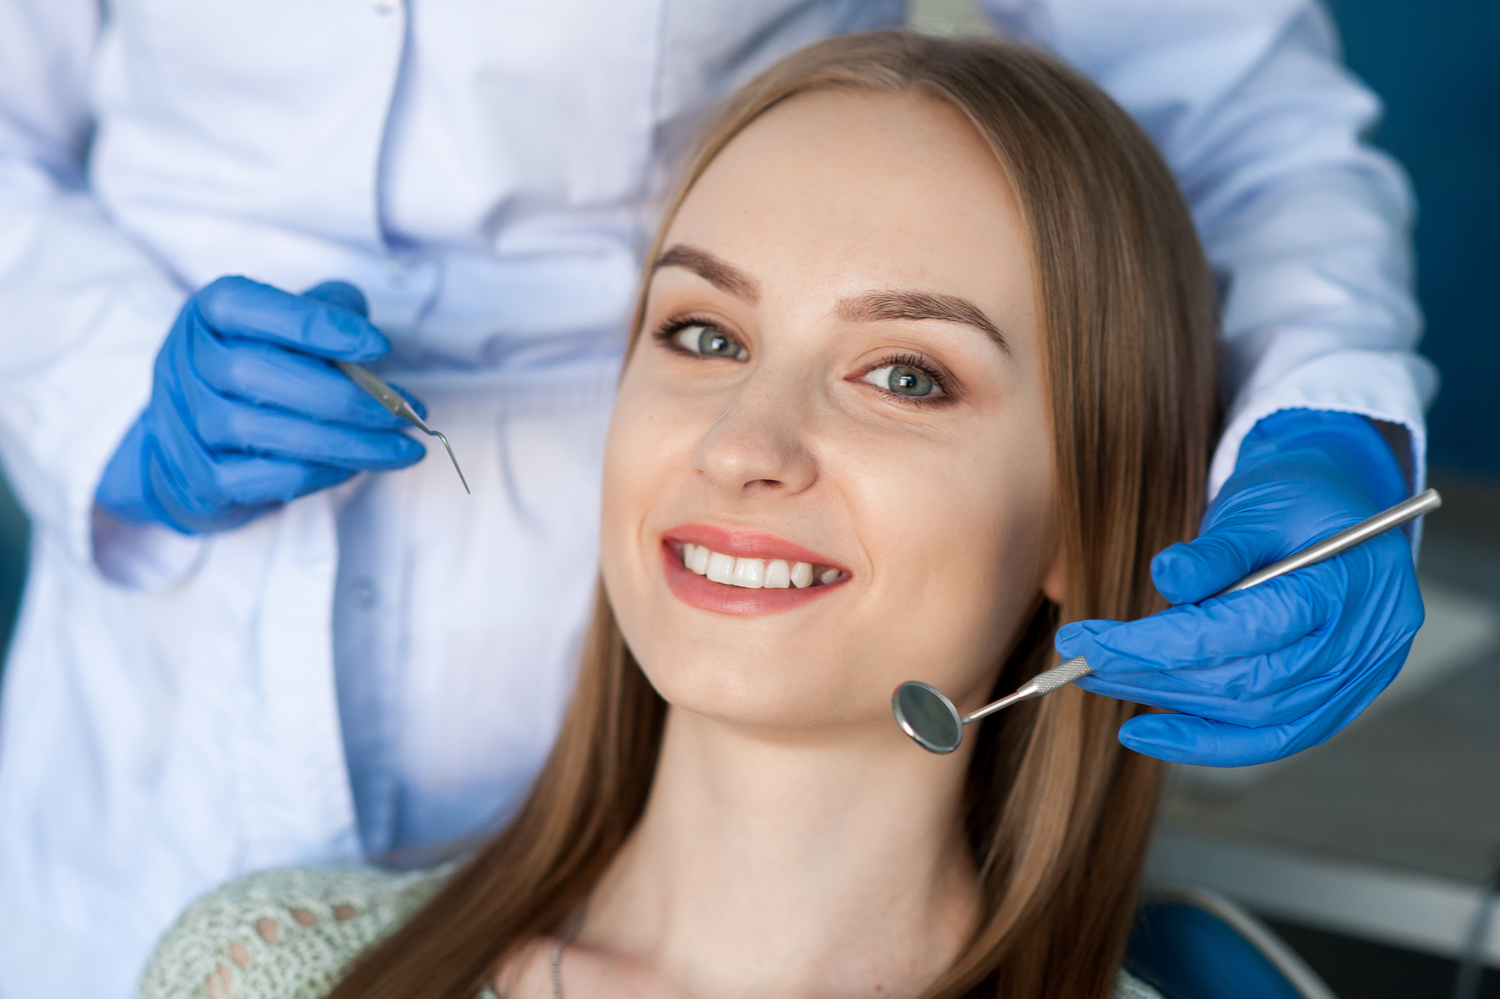 Why you should go to an orthodontist instead of a dentist for Invisalign